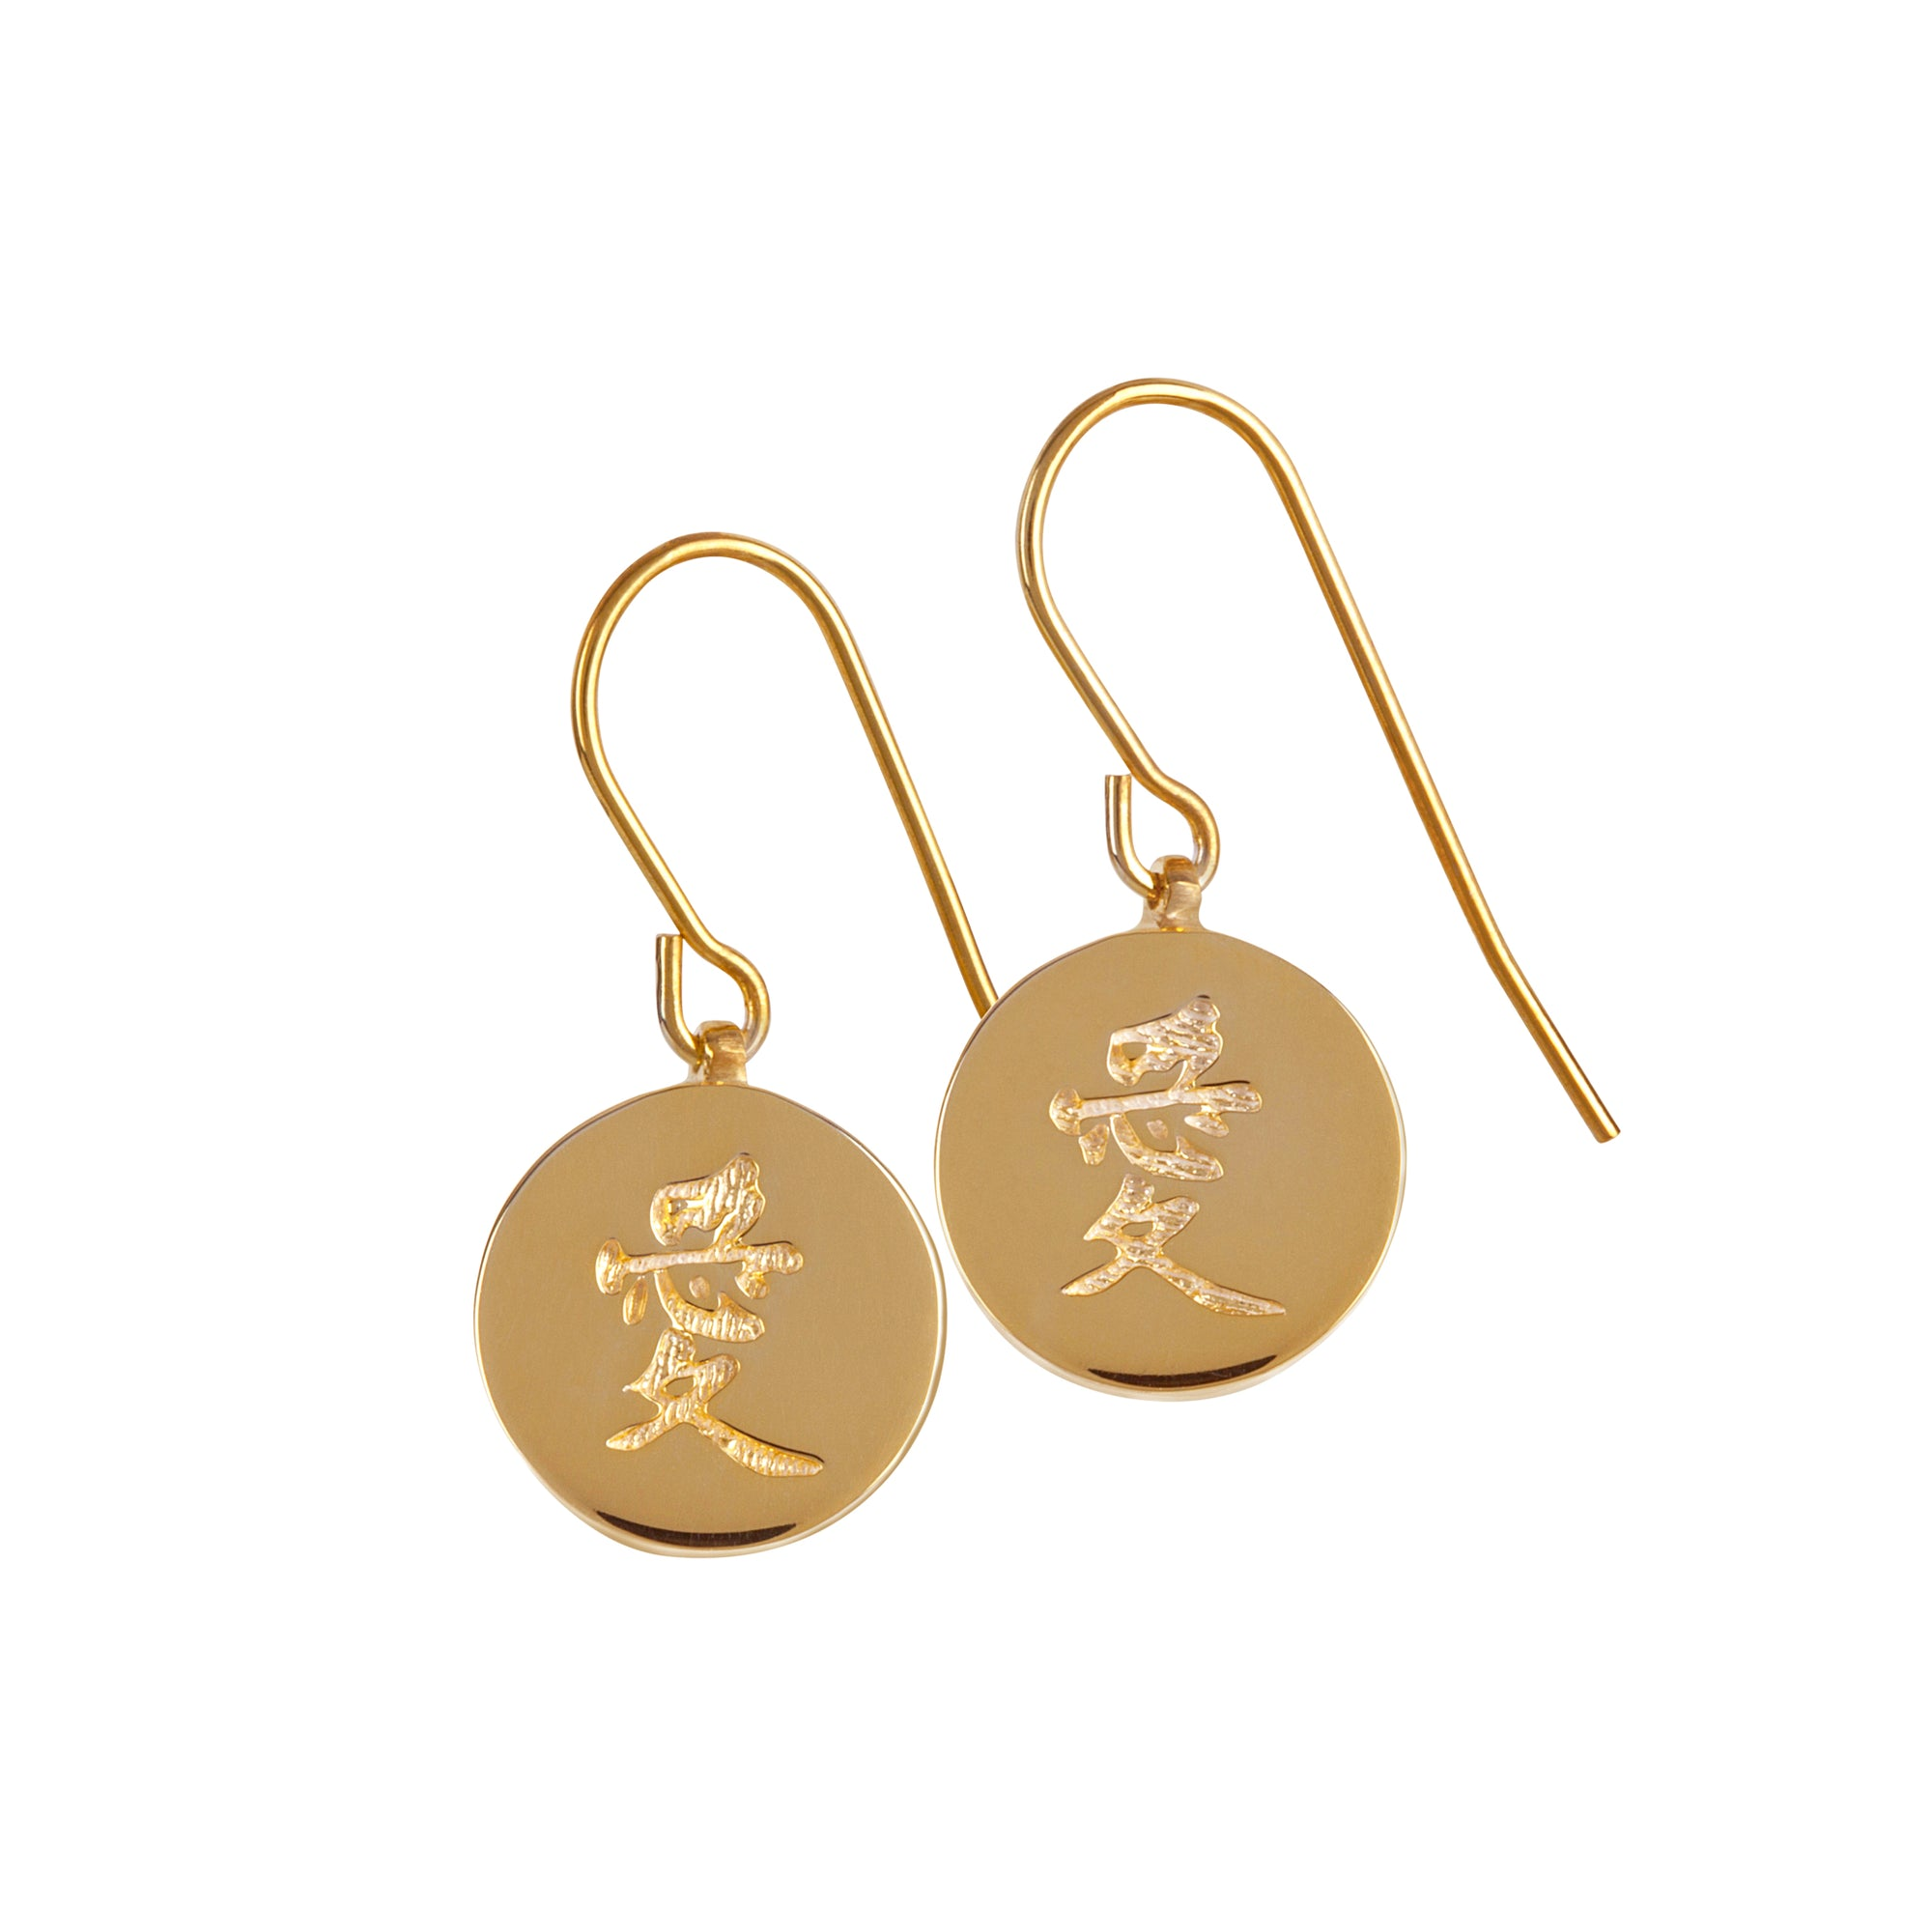 LOVE SOLID GOLD EARRINGS (Symbolising Love)